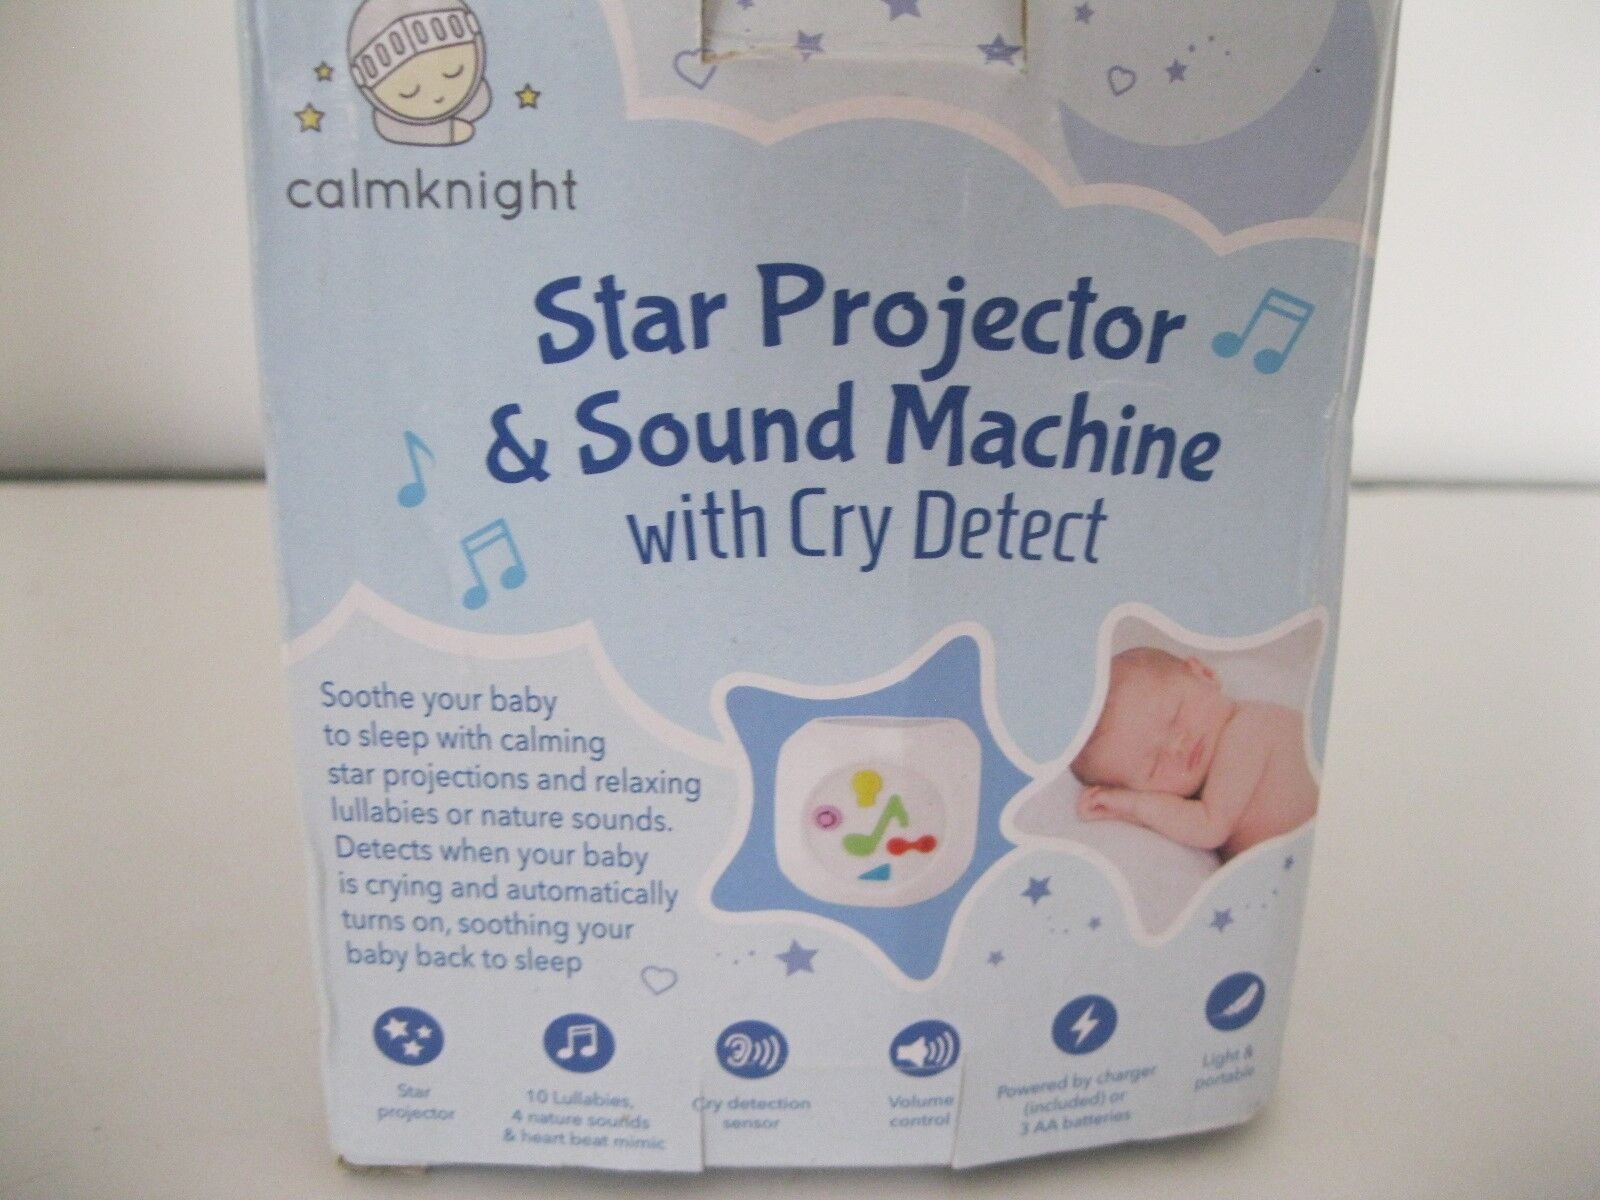 CALM KNIGHT STAR PROJECTOR & SOUND MACHINE WITH CRY DETECT N